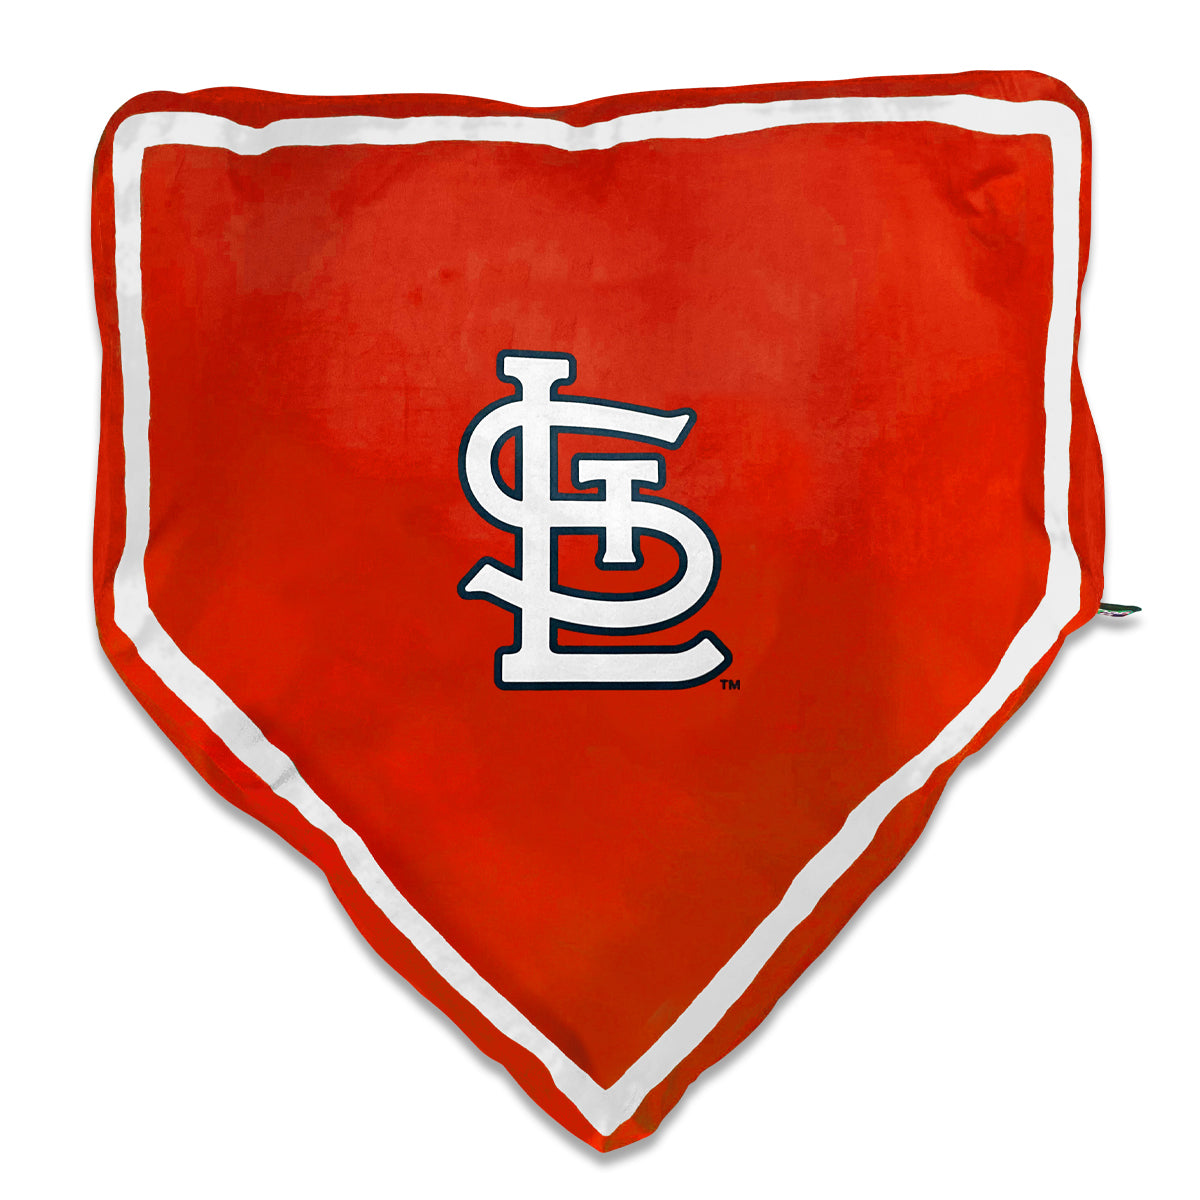 St. Louis Cardinals Home Plate Bed by Nap Cap